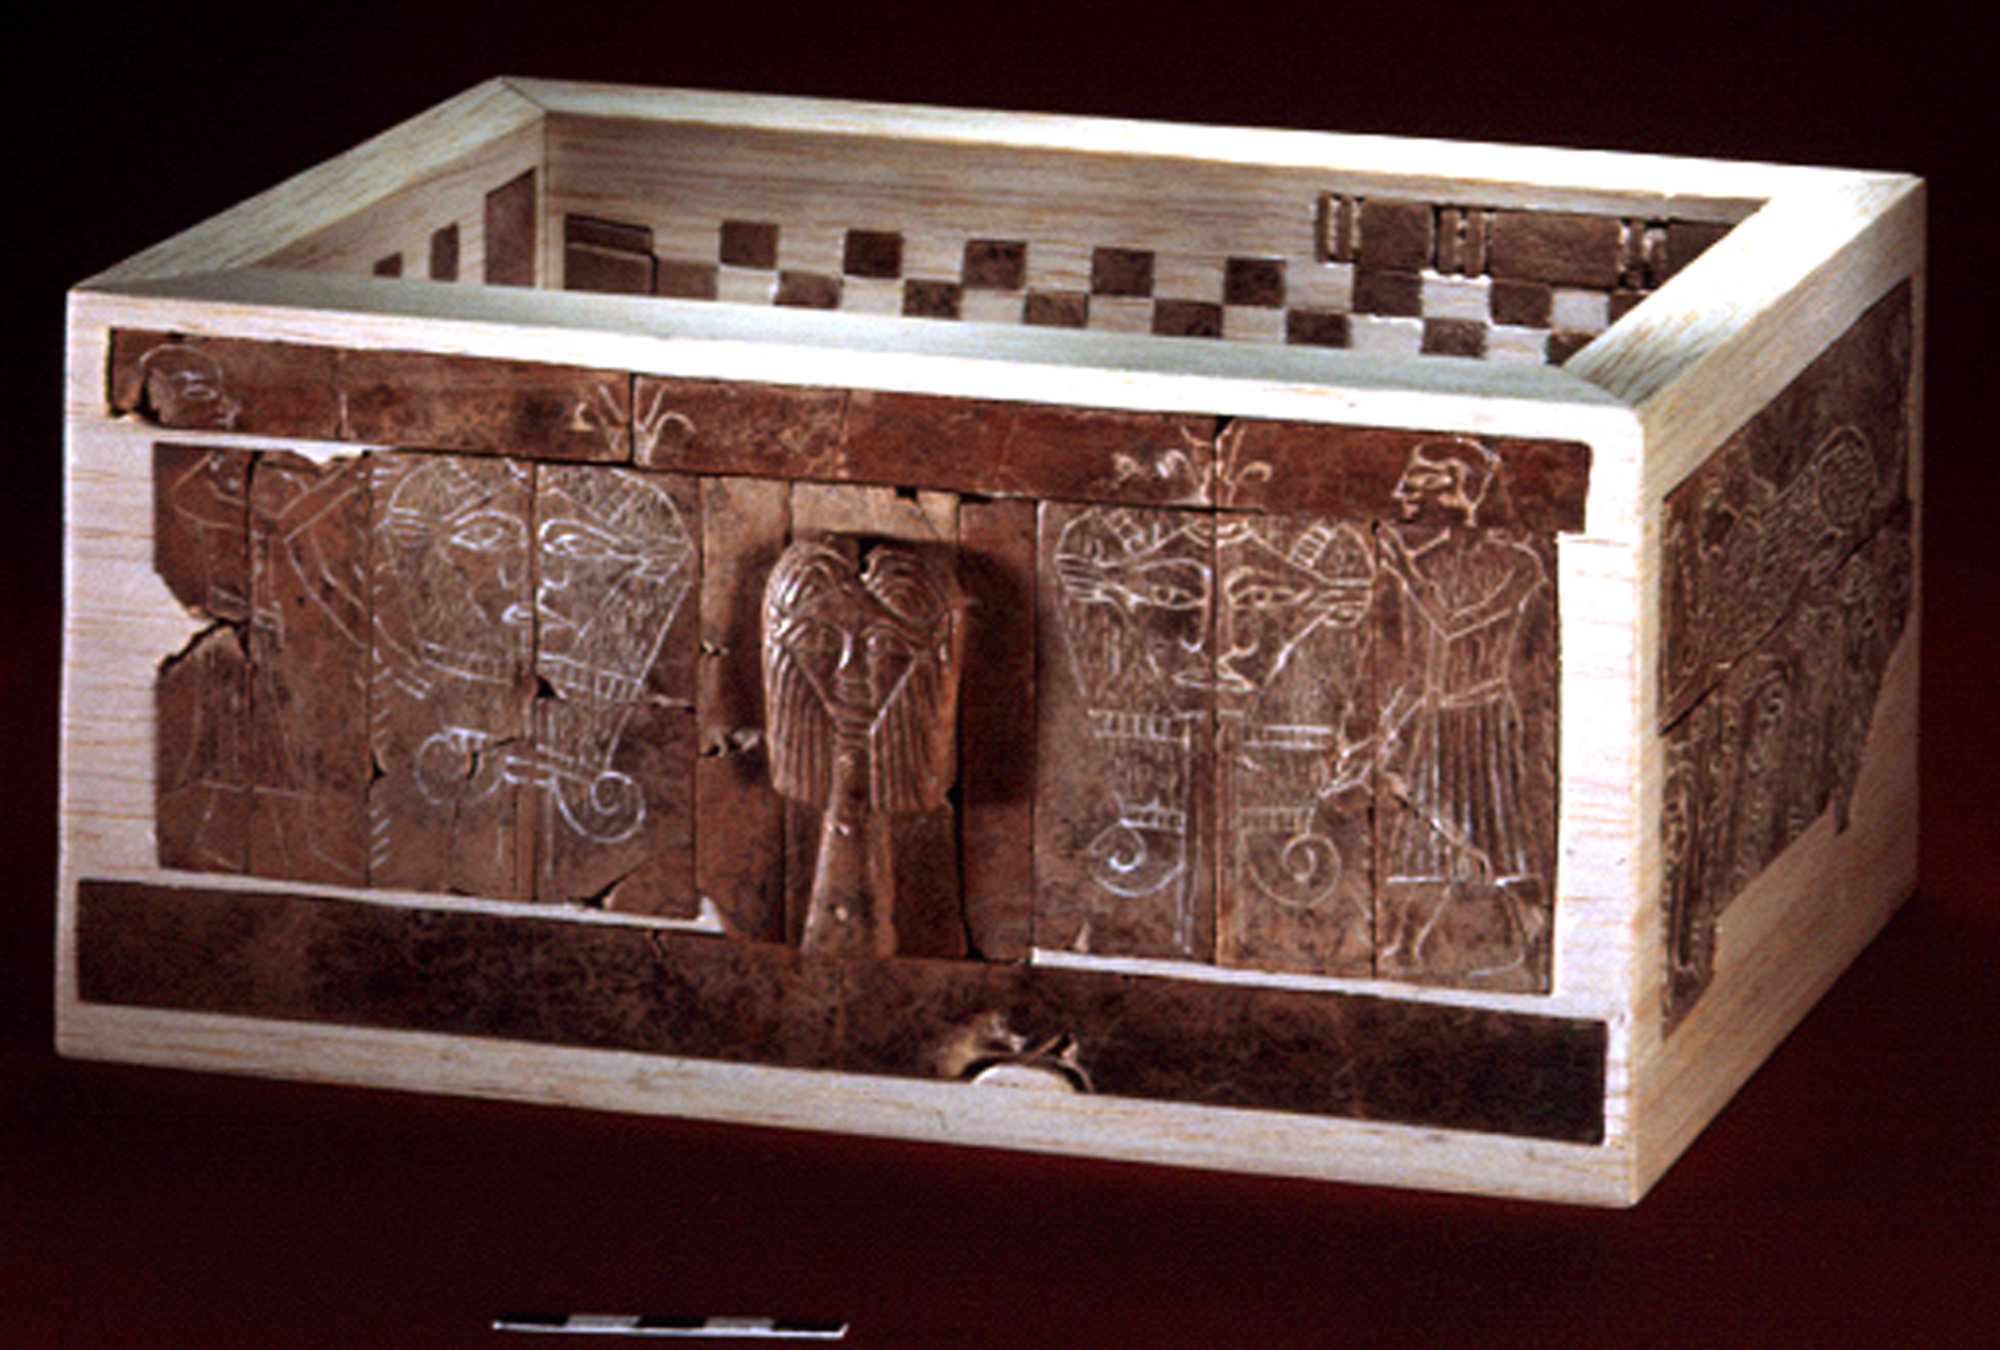 A jewelry box decorated with bone plaques engraved with various figures, found in the Late Bronze Age Ceremonial Precinct